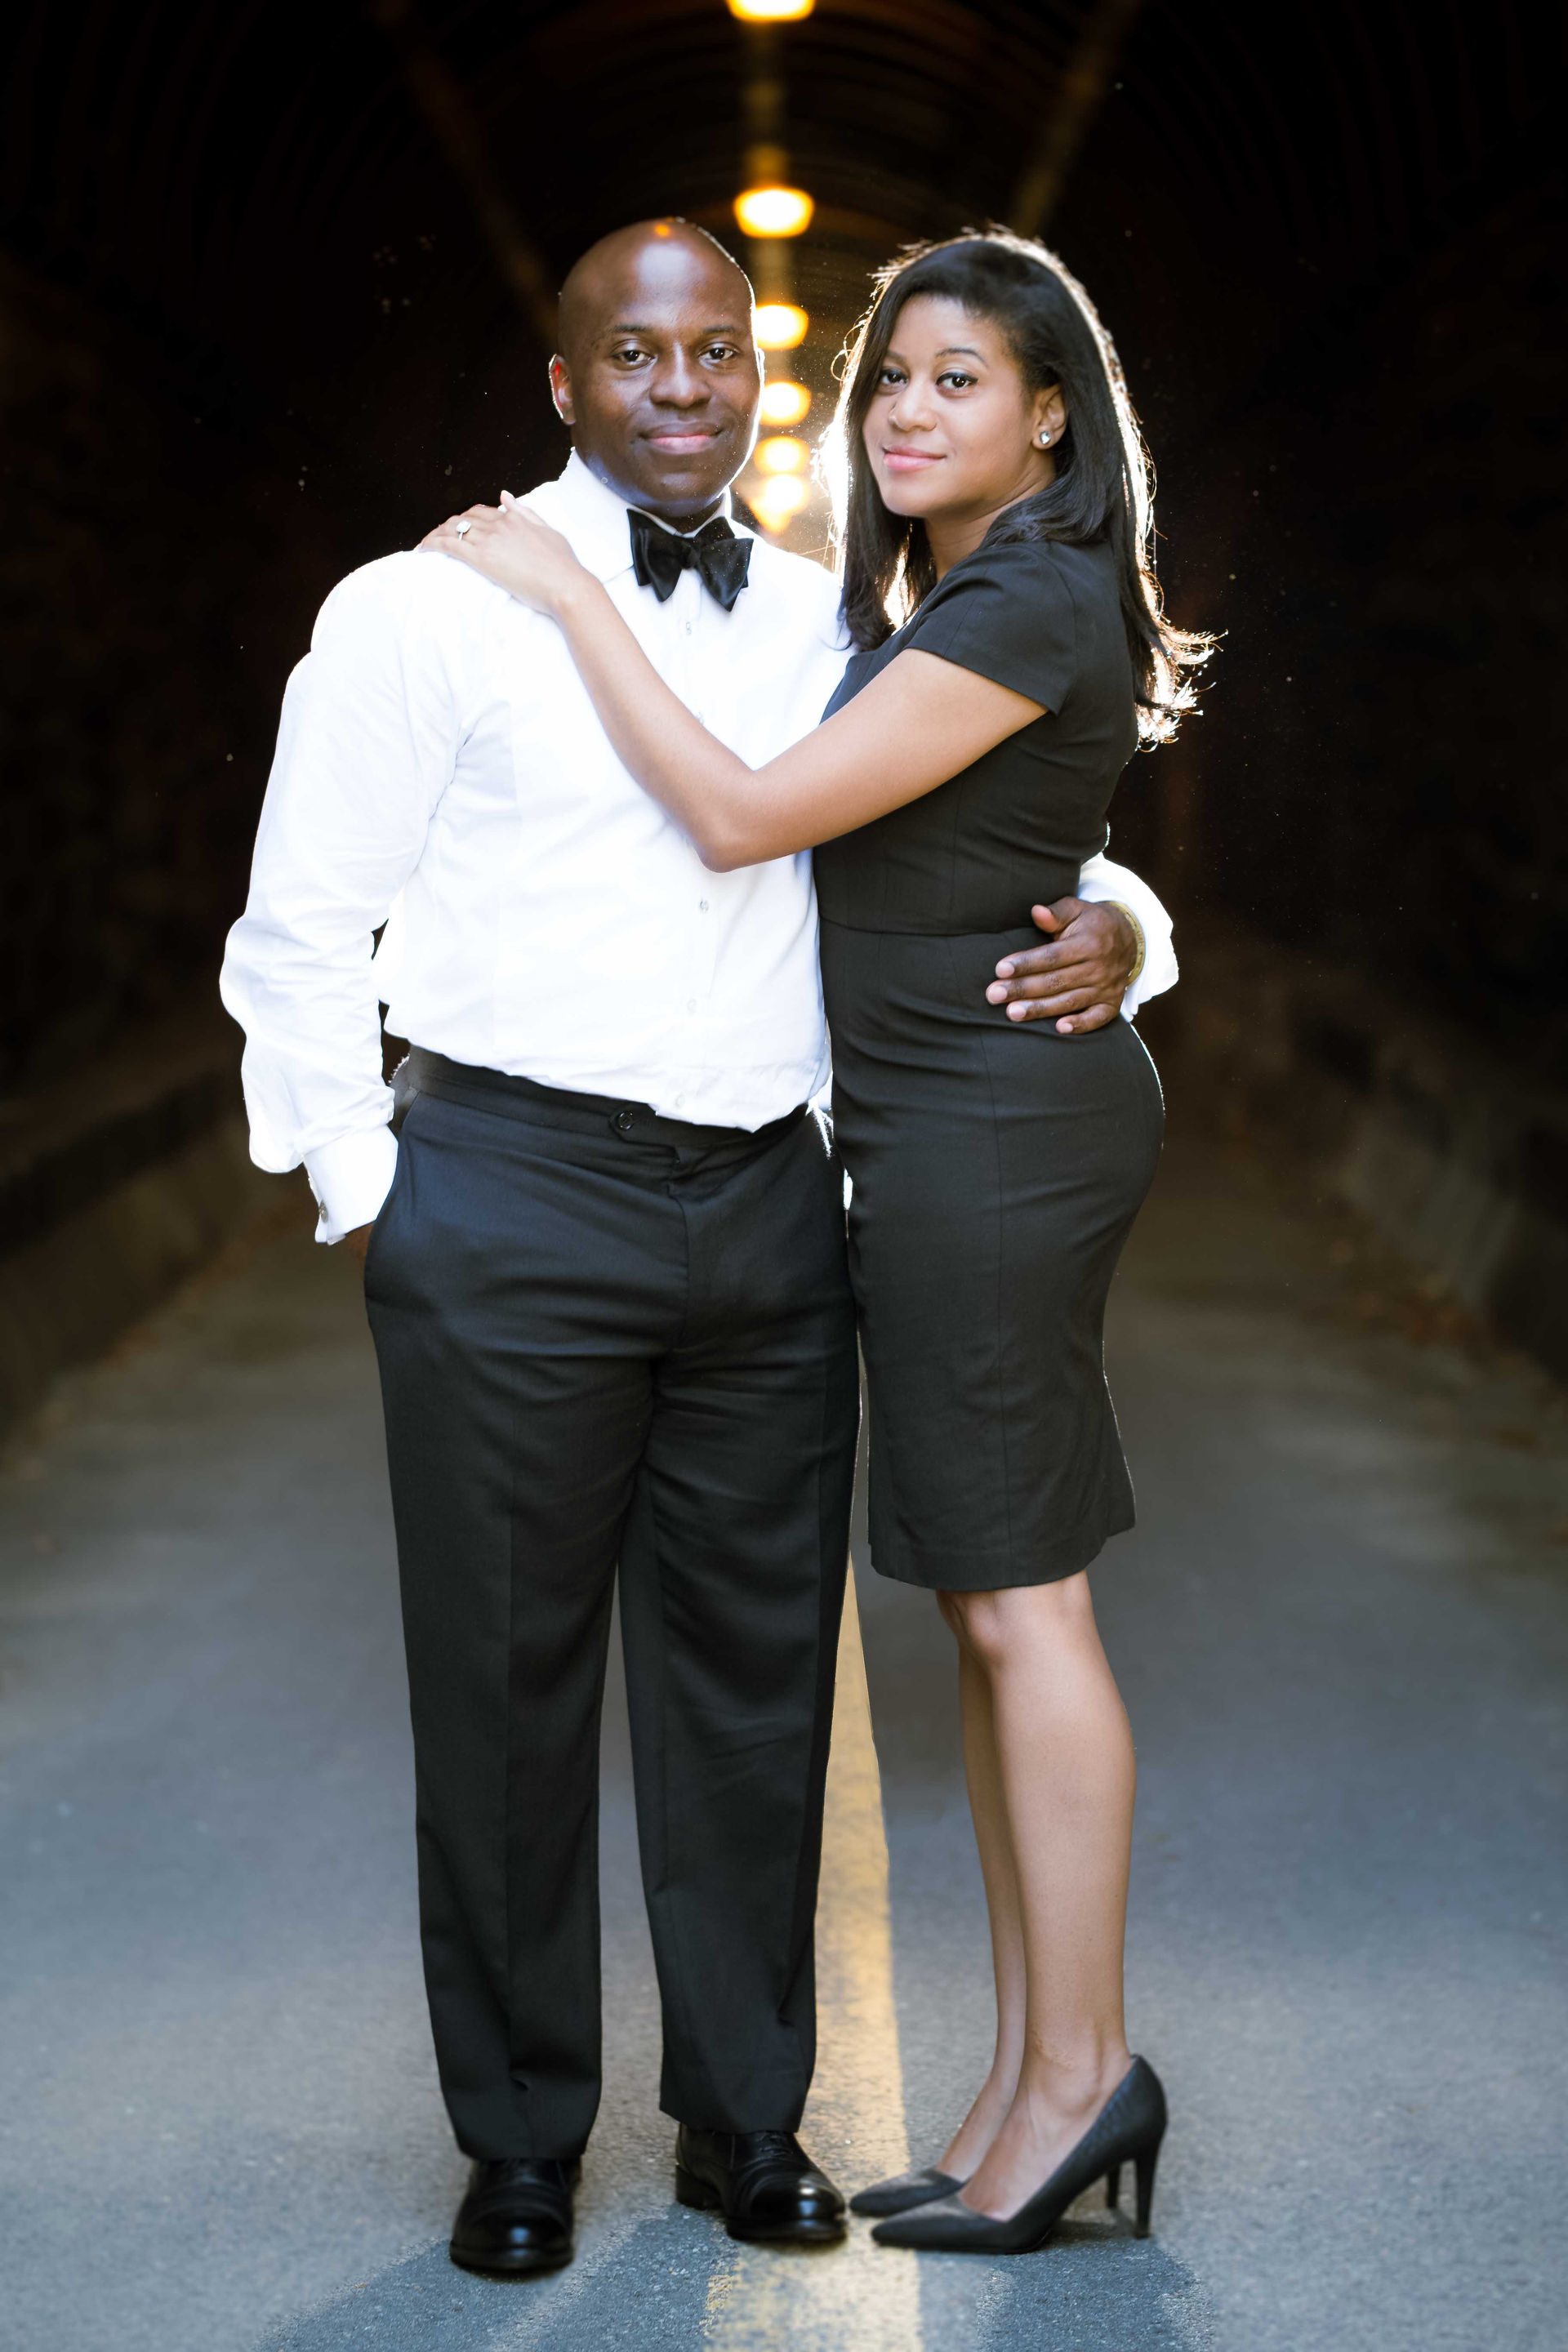 The couple posing during their engagement session in Old Town Alexandria, VA.